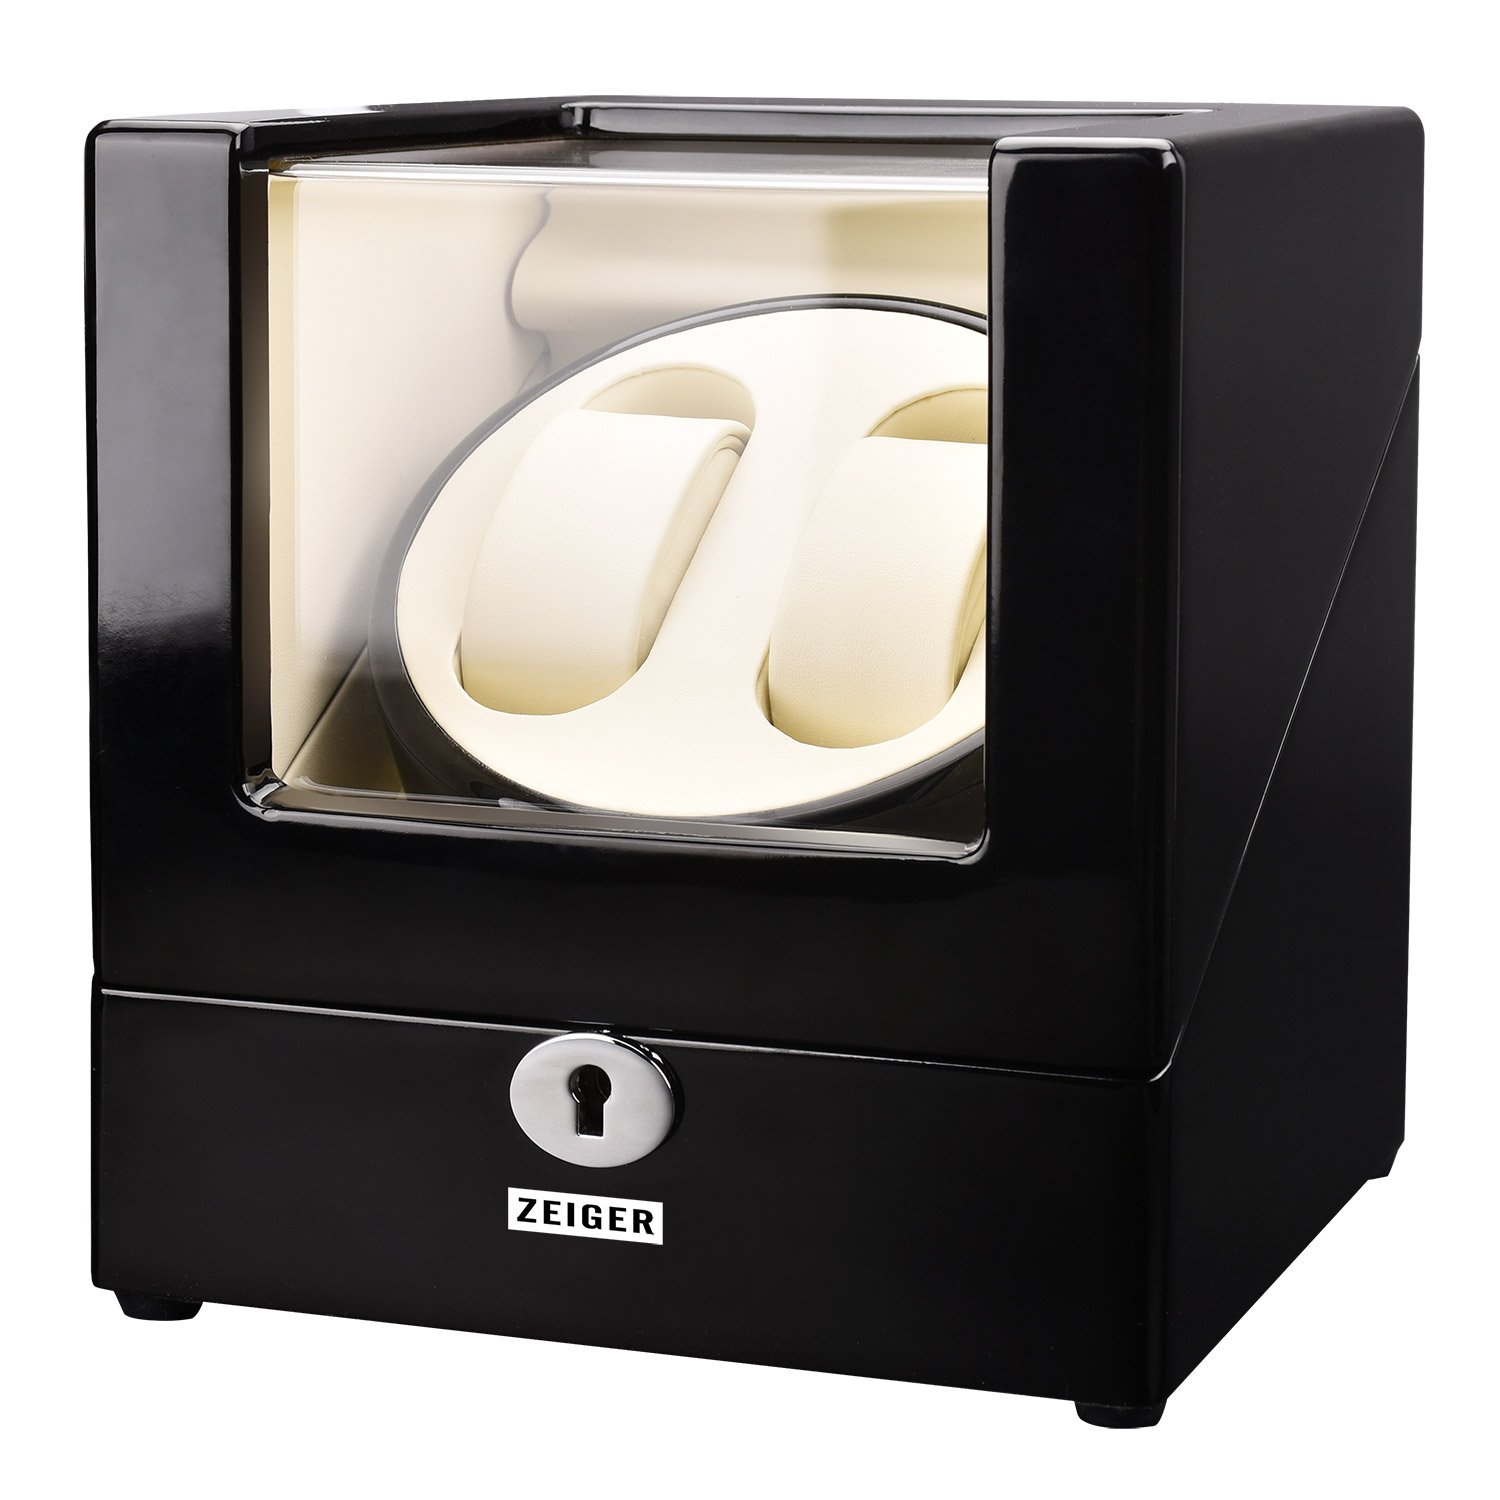 Zeiger Double Watch Winder for Large Watch Box Case with Quiet Automatic Japanese Mabuchi Motor Piano Paint s007